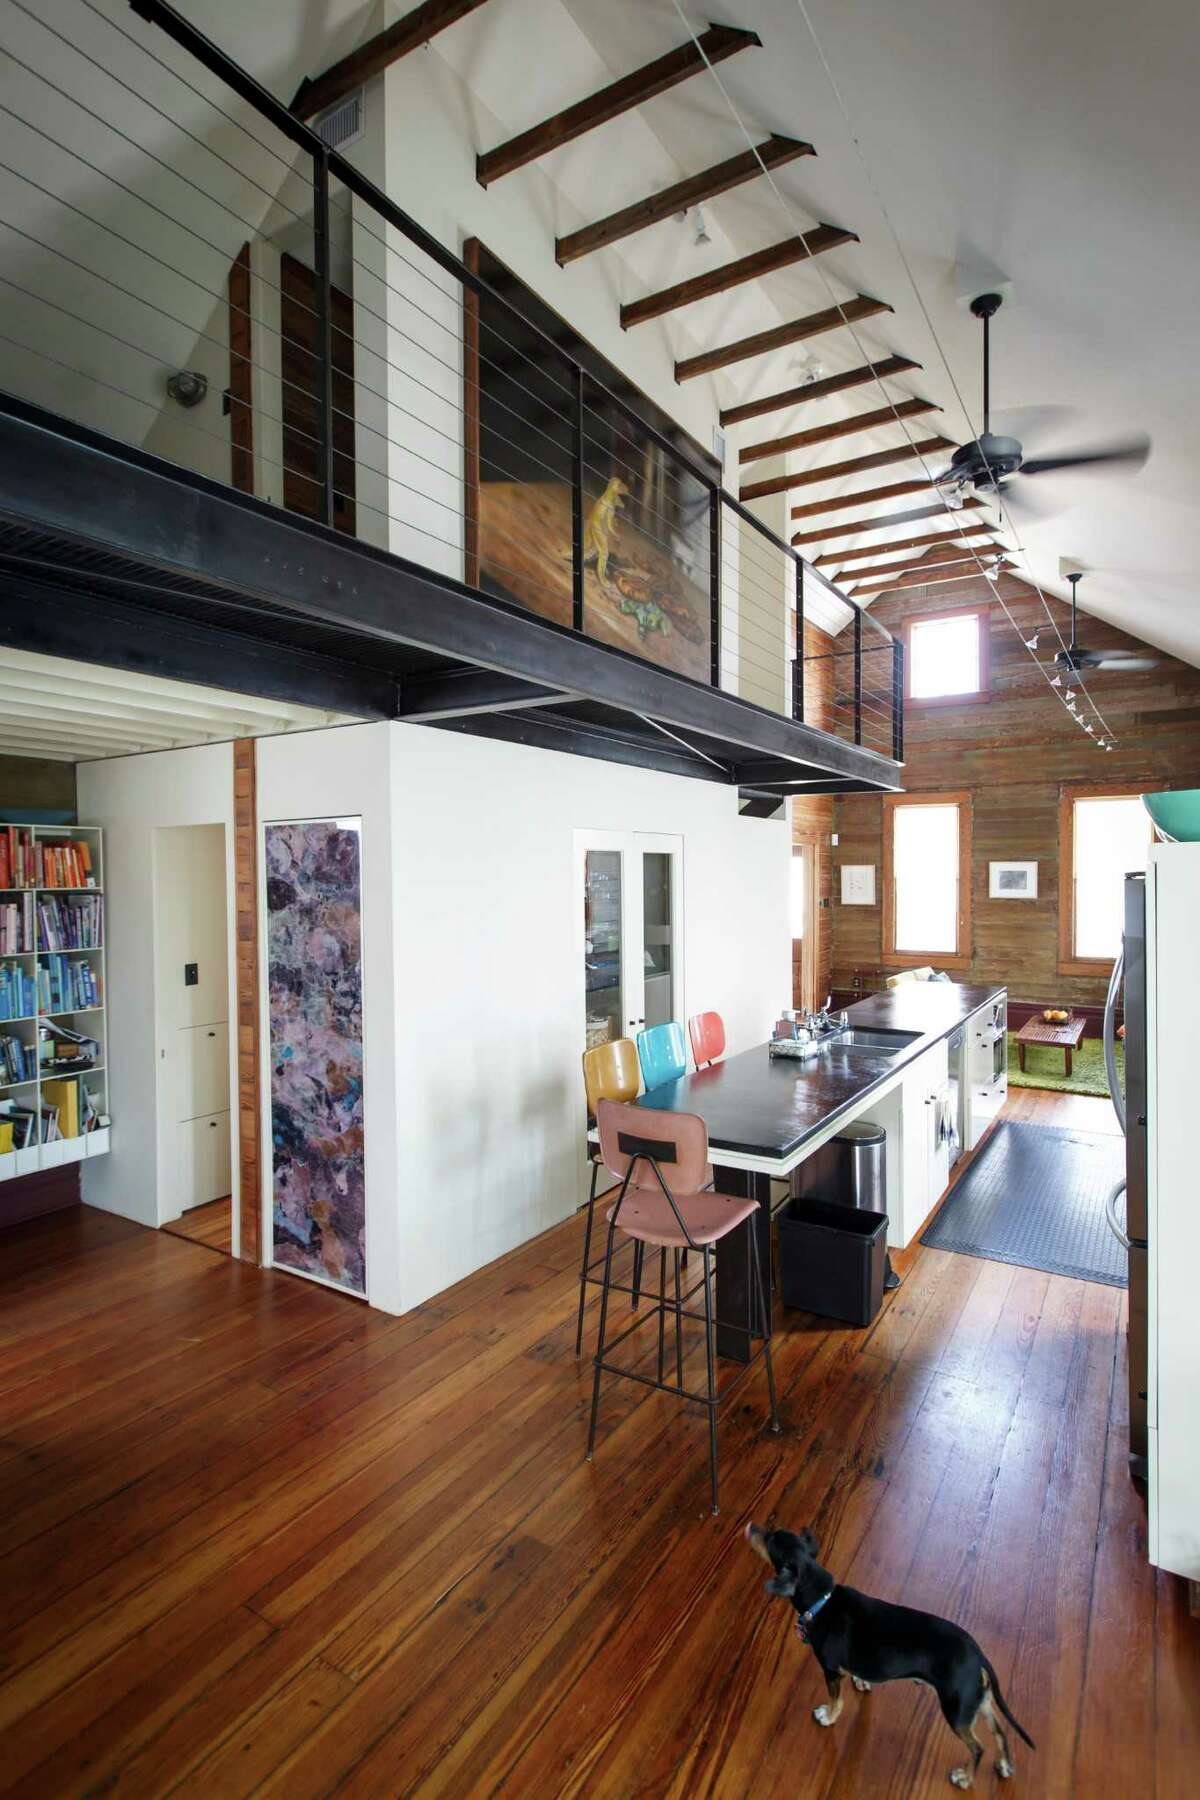 A renovation of the original 1885 house that was completed in 2000 included opening up the roof to create space for a second-floor master bedroom and office reached via catwalk. ( Michael Paulsen / Houston Chronicle )